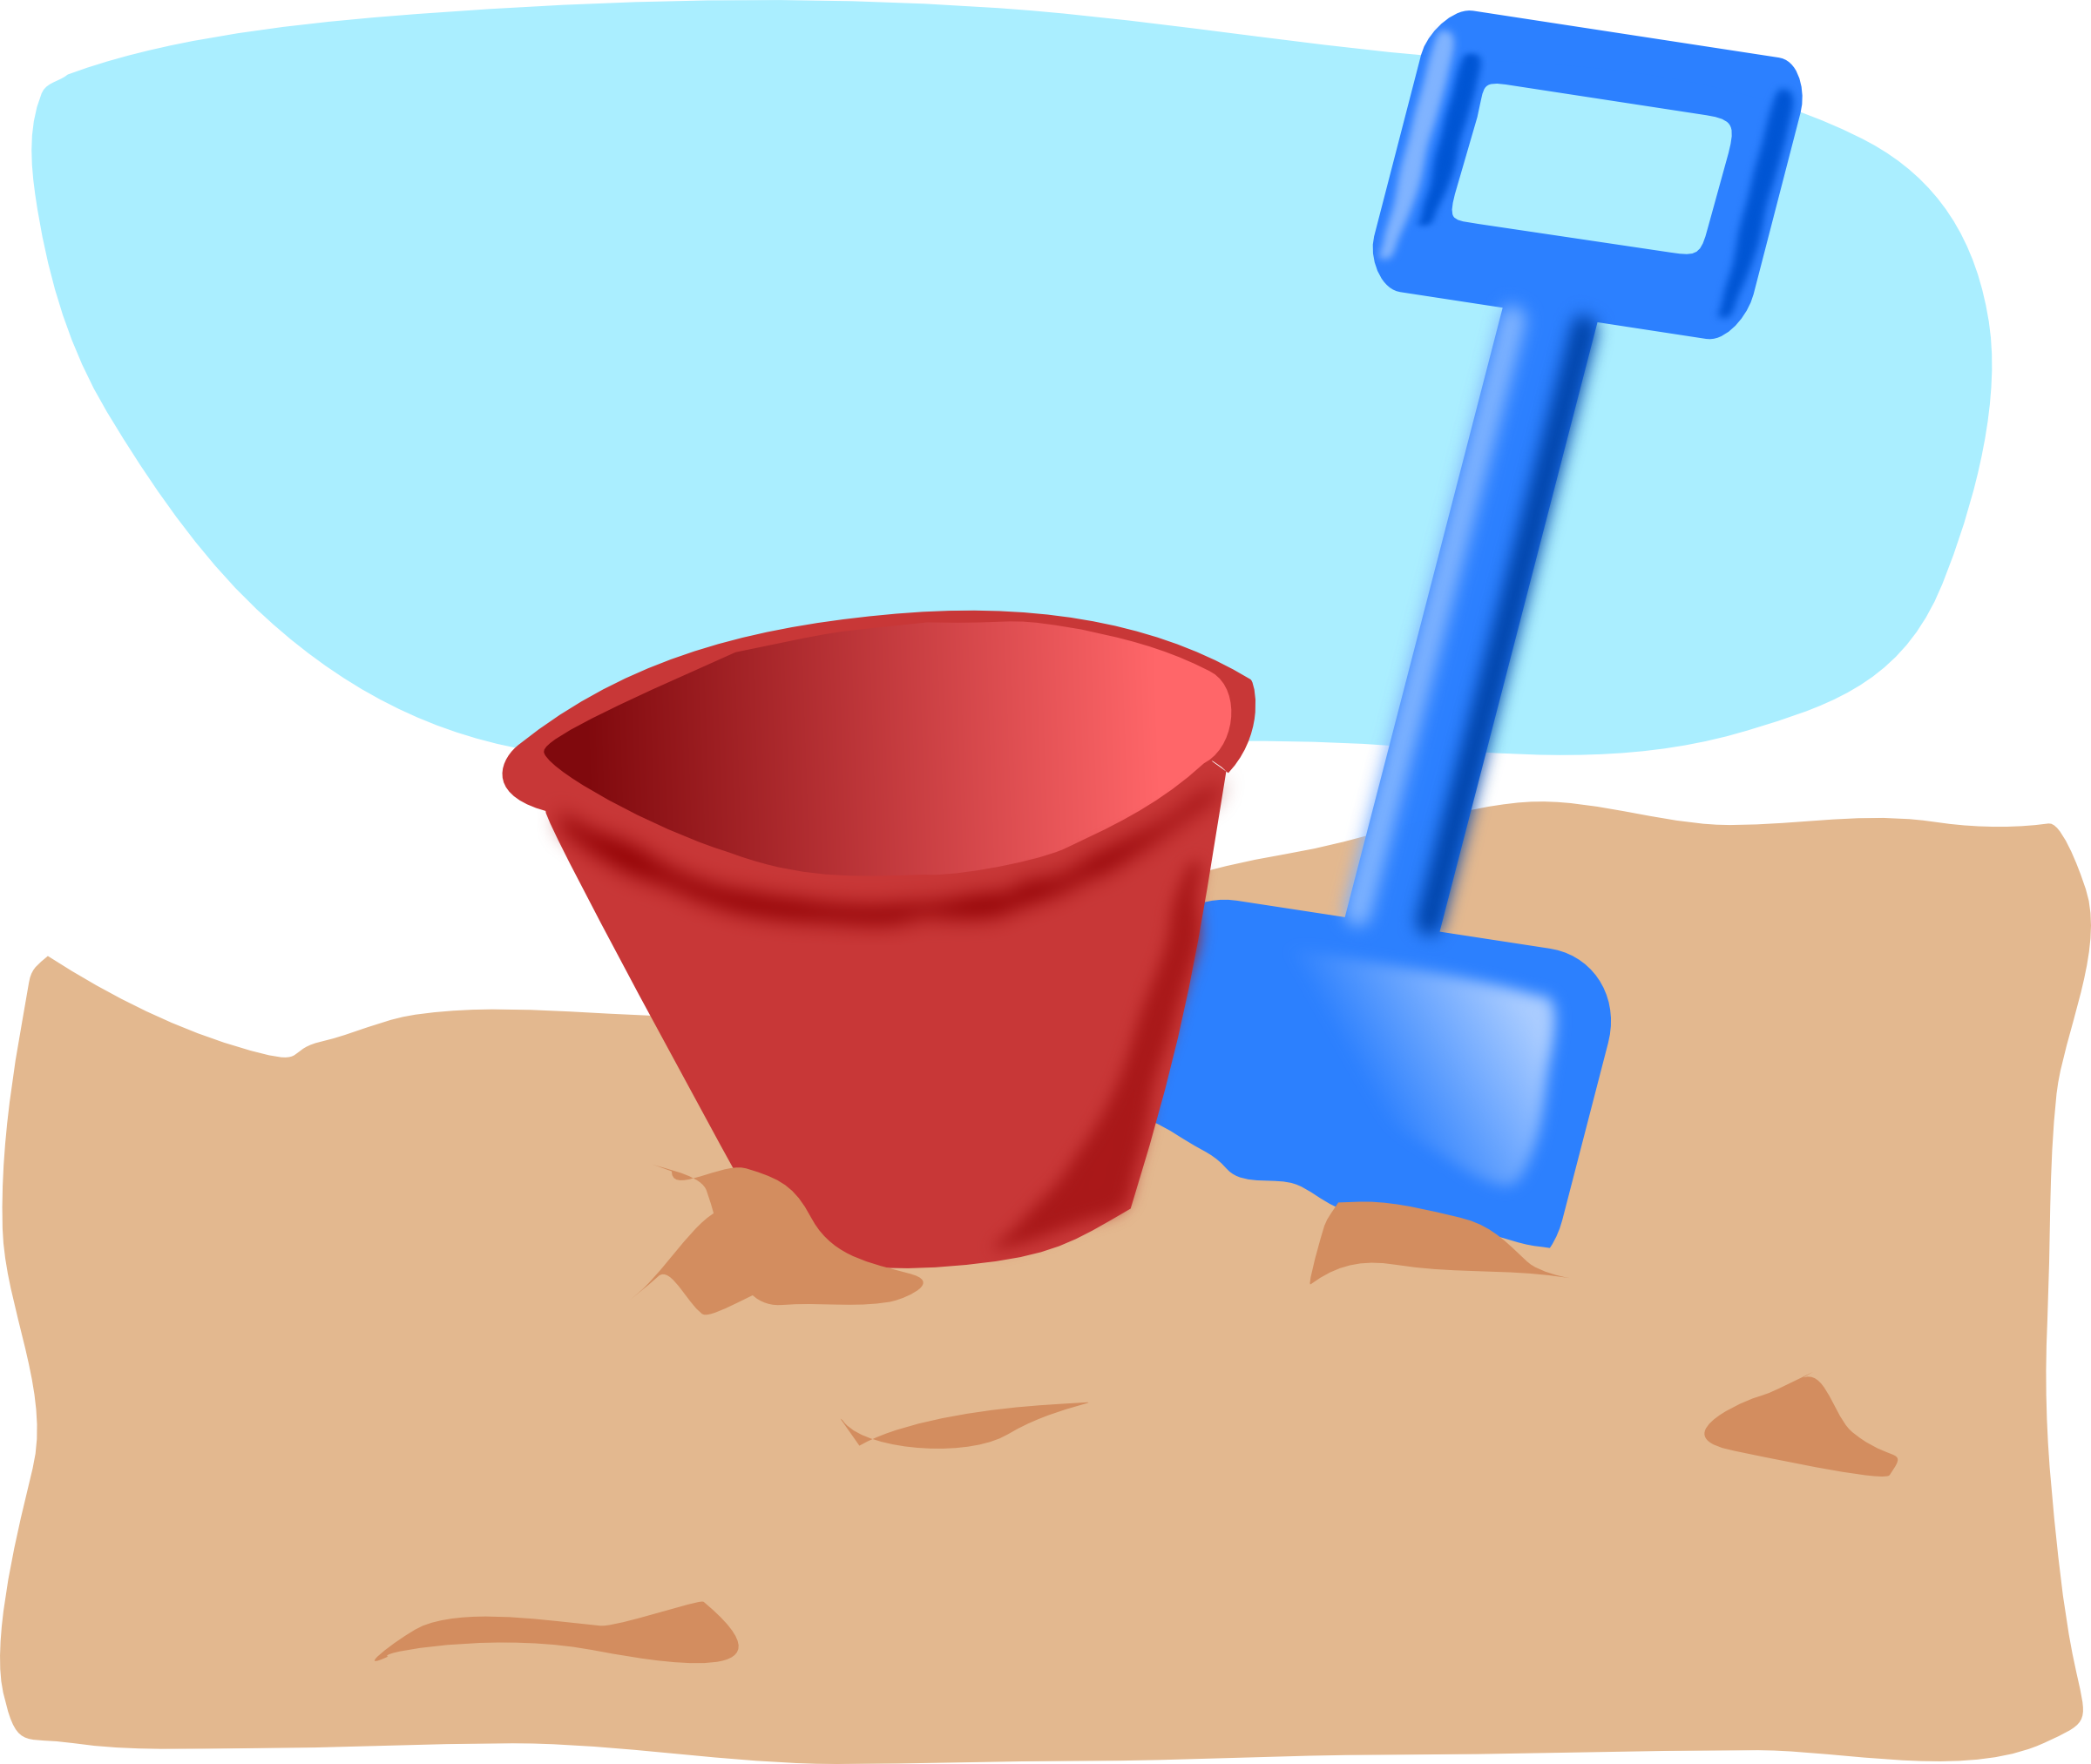 Sand Bucket Clipart Black And White | Clipart Panda - Free ...